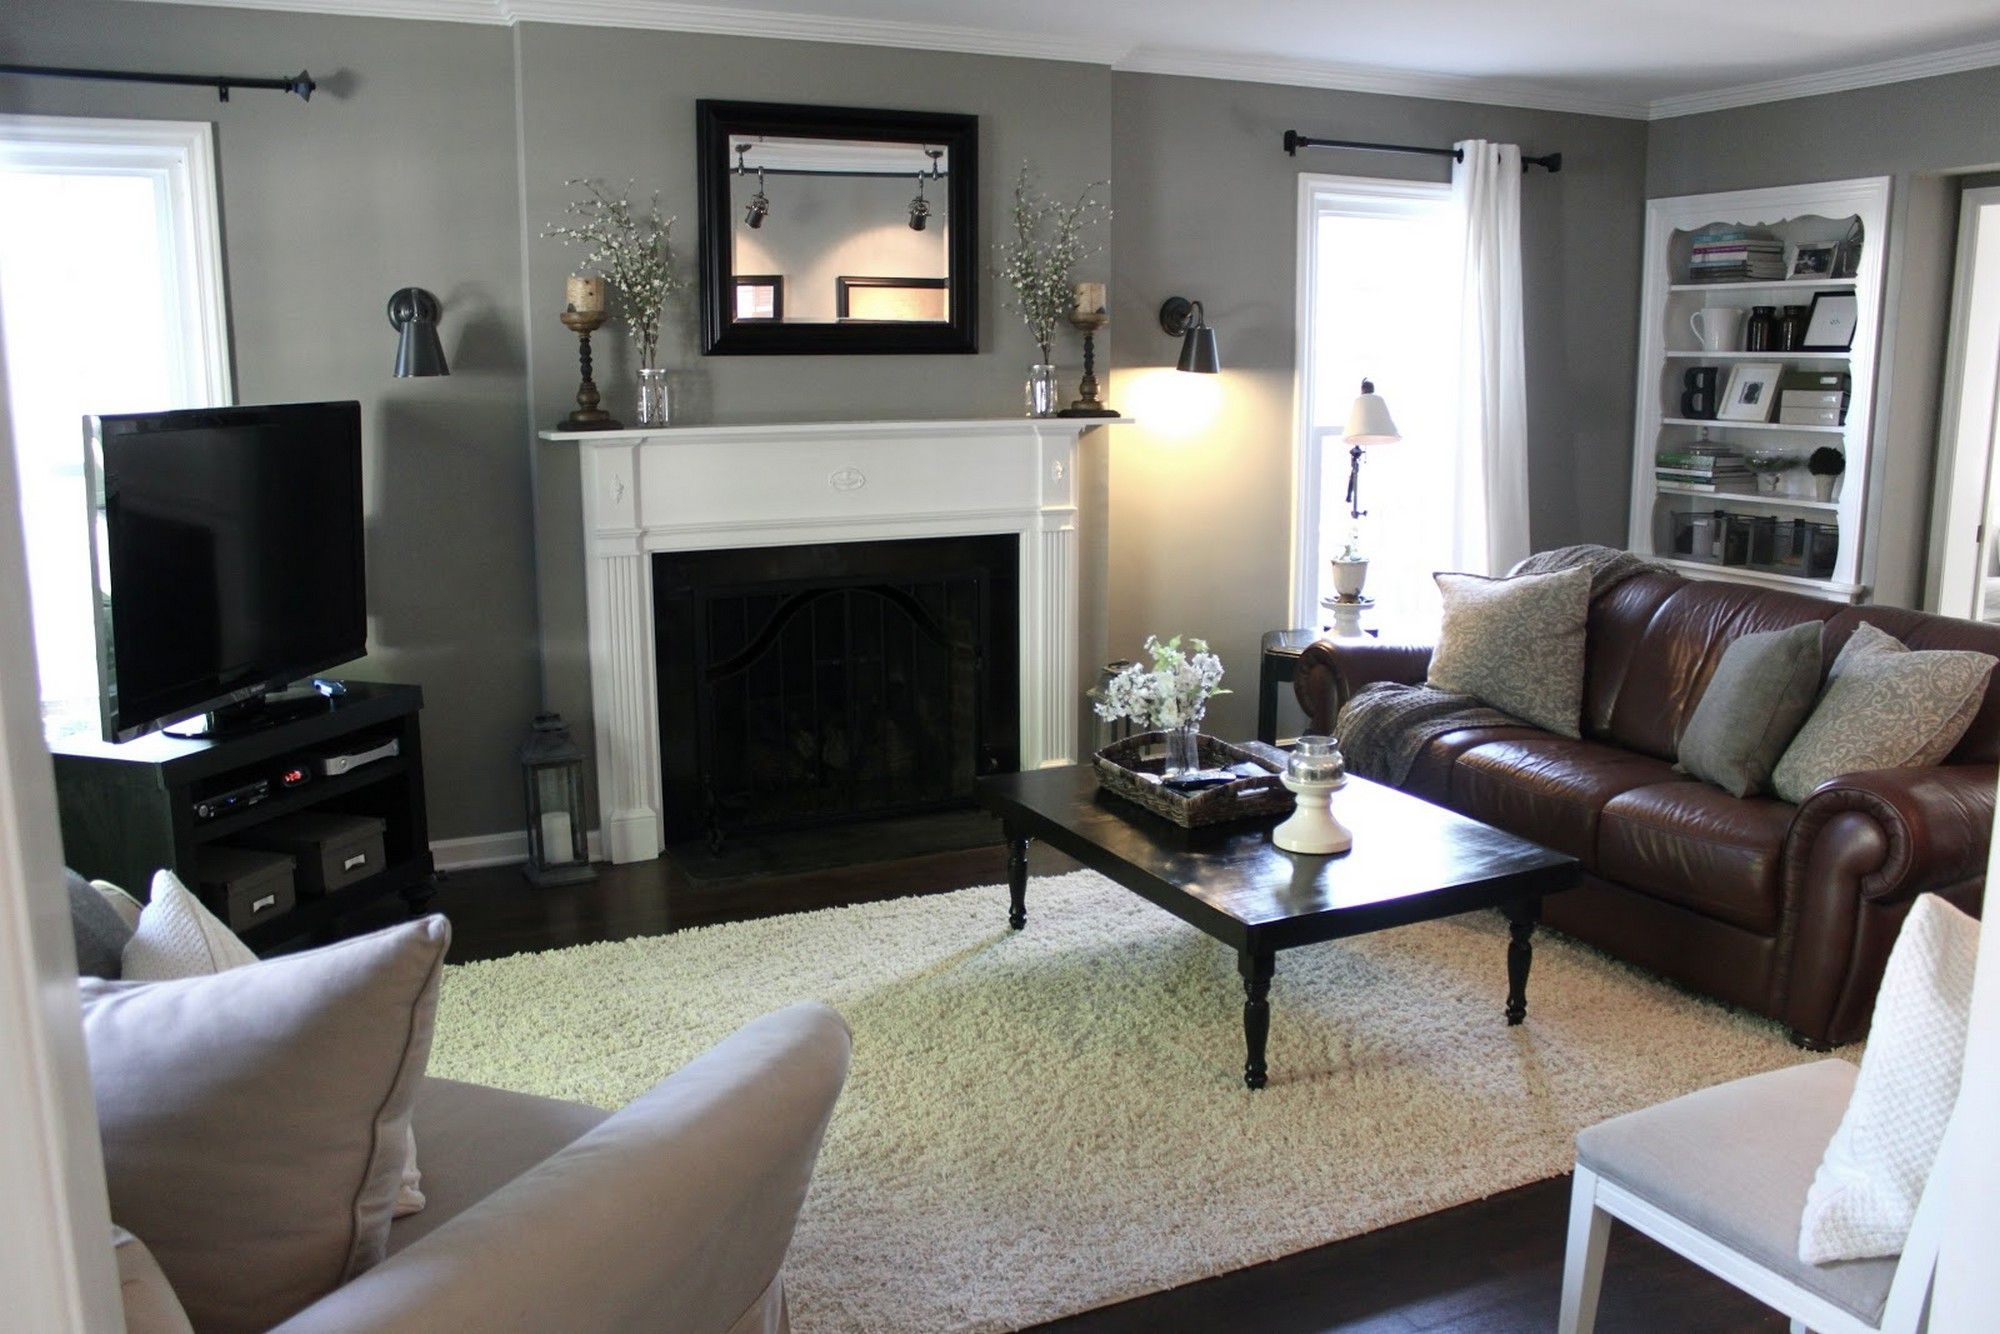 What Colors Go With Grey Walls Uncategorized Fascinating Bedroom Living Room Gray Color Sch Grey Walls Living Room Small Living Room Design Living Room Grey